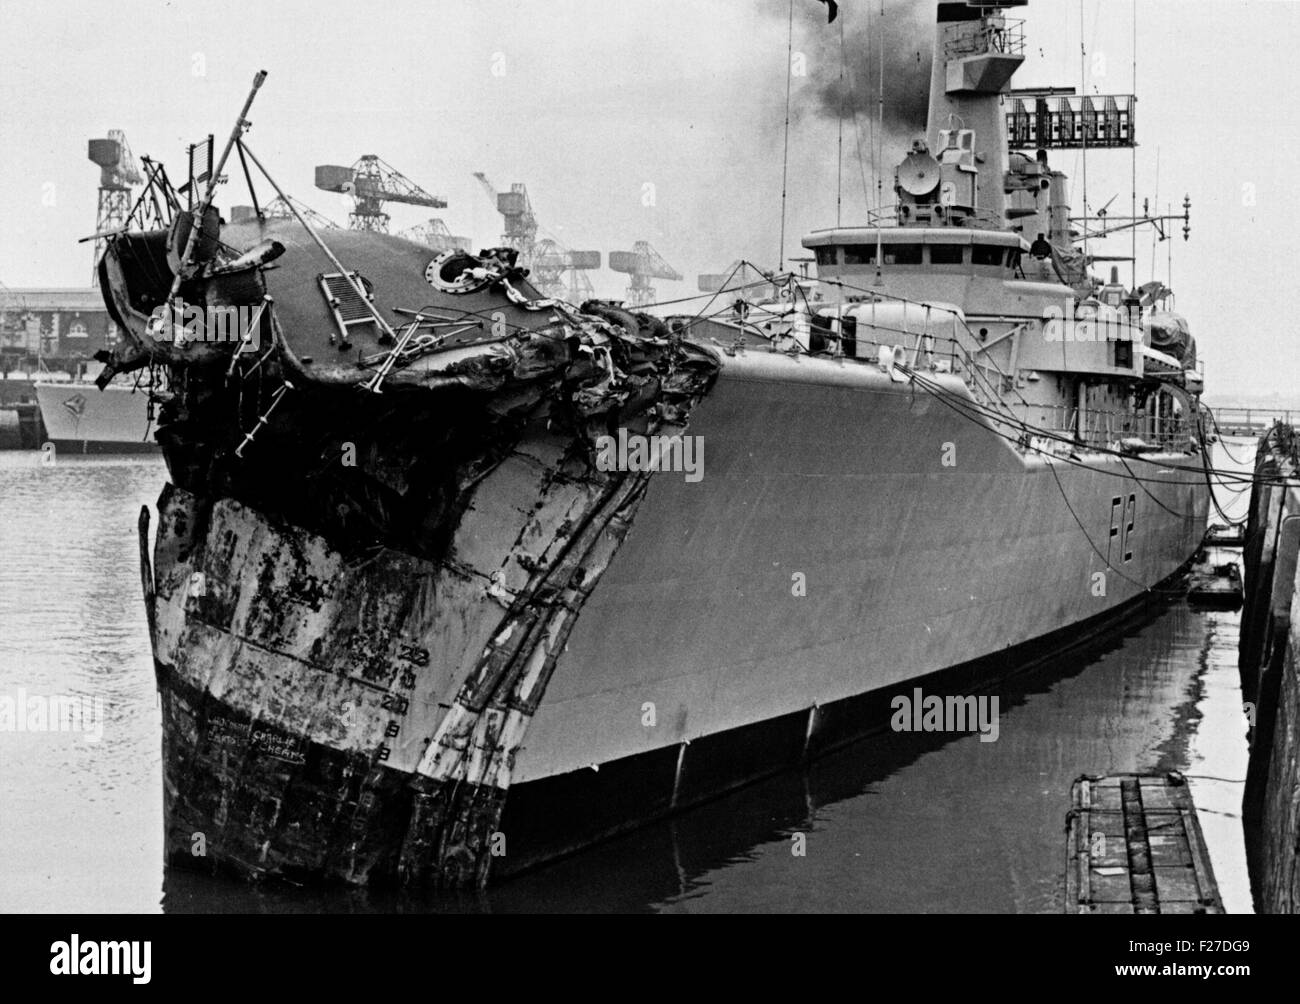 AJAXNETPHOTO.  13TH NOVEMBER, 1975. PORTSMOUTH, ENGLAND. - CRUNCH! - PICTURED ALONGSIDE AT THE NAVAL BASE DOCKYARD WITH 14 FEET OF HER BOW SMASHED; THE GP LEANDER CLASS FRIGATE HMS ACHILLES (2500 TONS). THE FRIGATE COLLIDED WITH LIBERIAN OIL TANKER OLYMPIC ALLIANCE 1 MILES S.E. OF DOVER NEAR VARNE LIGHTSHIP ON NIGHT OF 12/13 NOV 1975. THREE CREWMEN ON ACHILLES WERE INJURED. PHOTO:JONATHAN EASTLAND/AJAX REF:25_11_75 Stock Photo